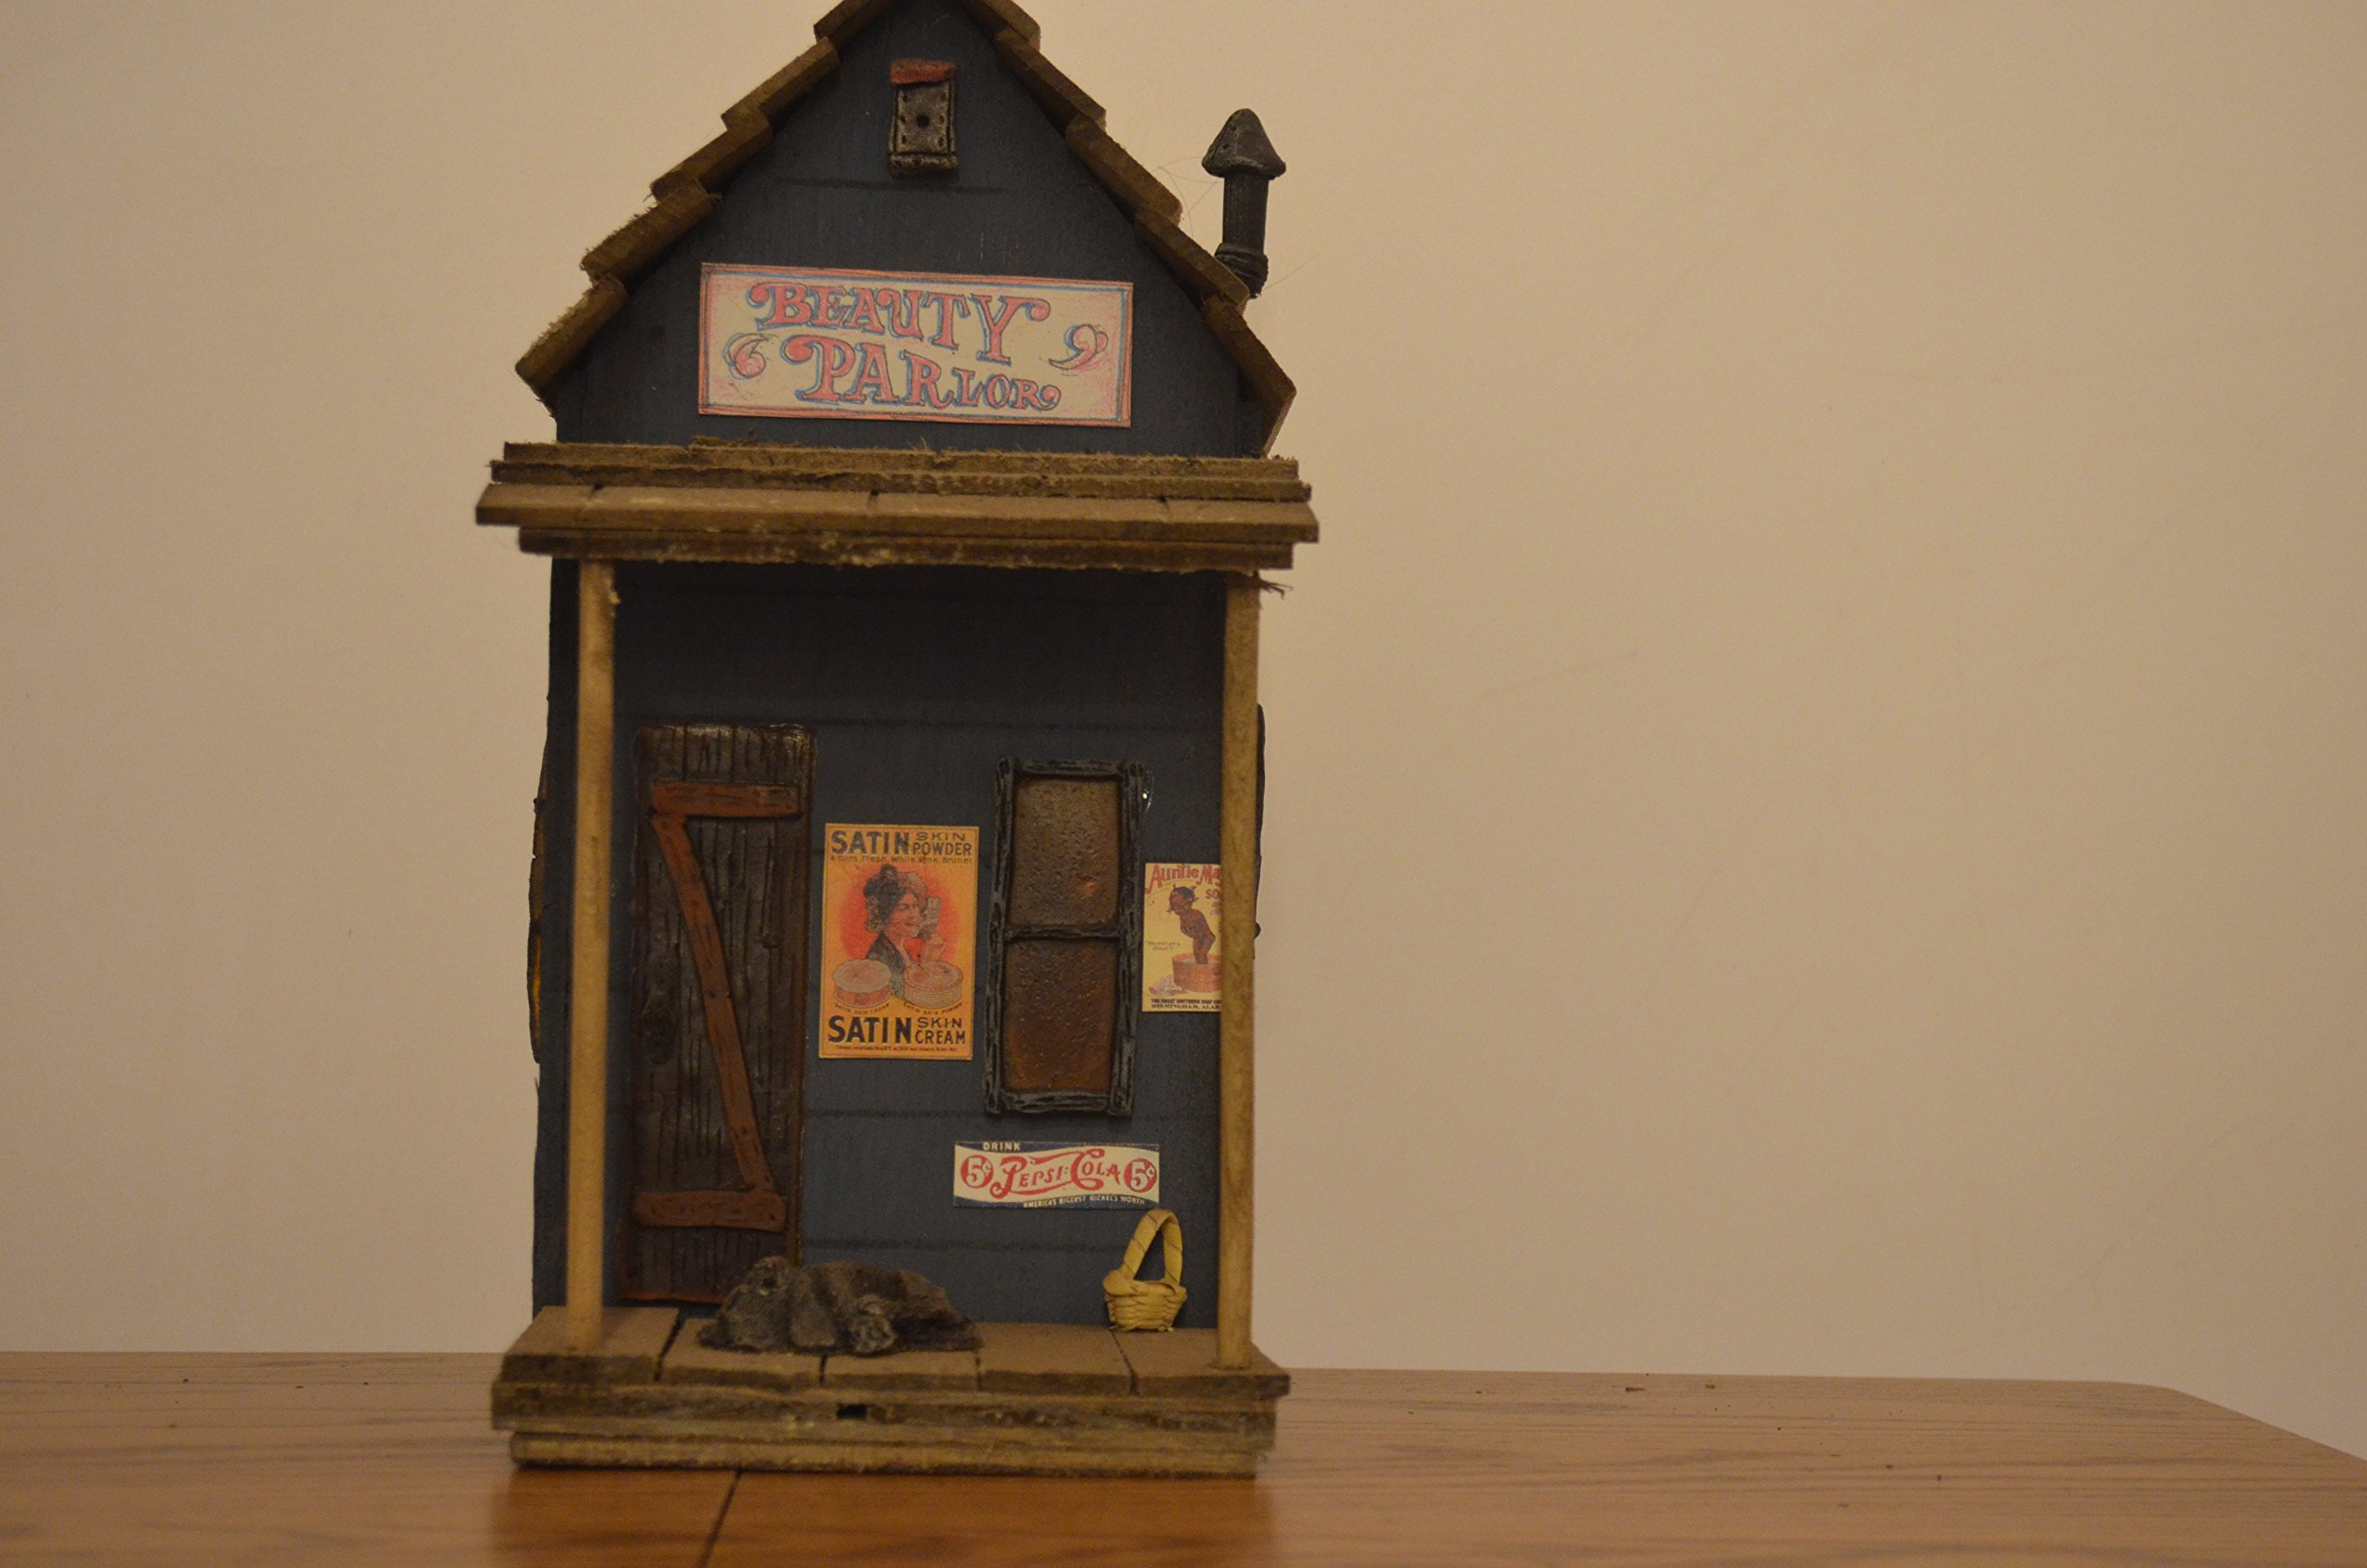 Birdhouse (With Entrance/ Exit Hole in the Front and Access Hole in the Back for Detachable Light to Glow Through the Windows and Doors) Resembling a Wooden Blue Beauty Parlor Decorated with Windows, a Door, a Dog, Basket, and Signs. Measurements Are 9 1/